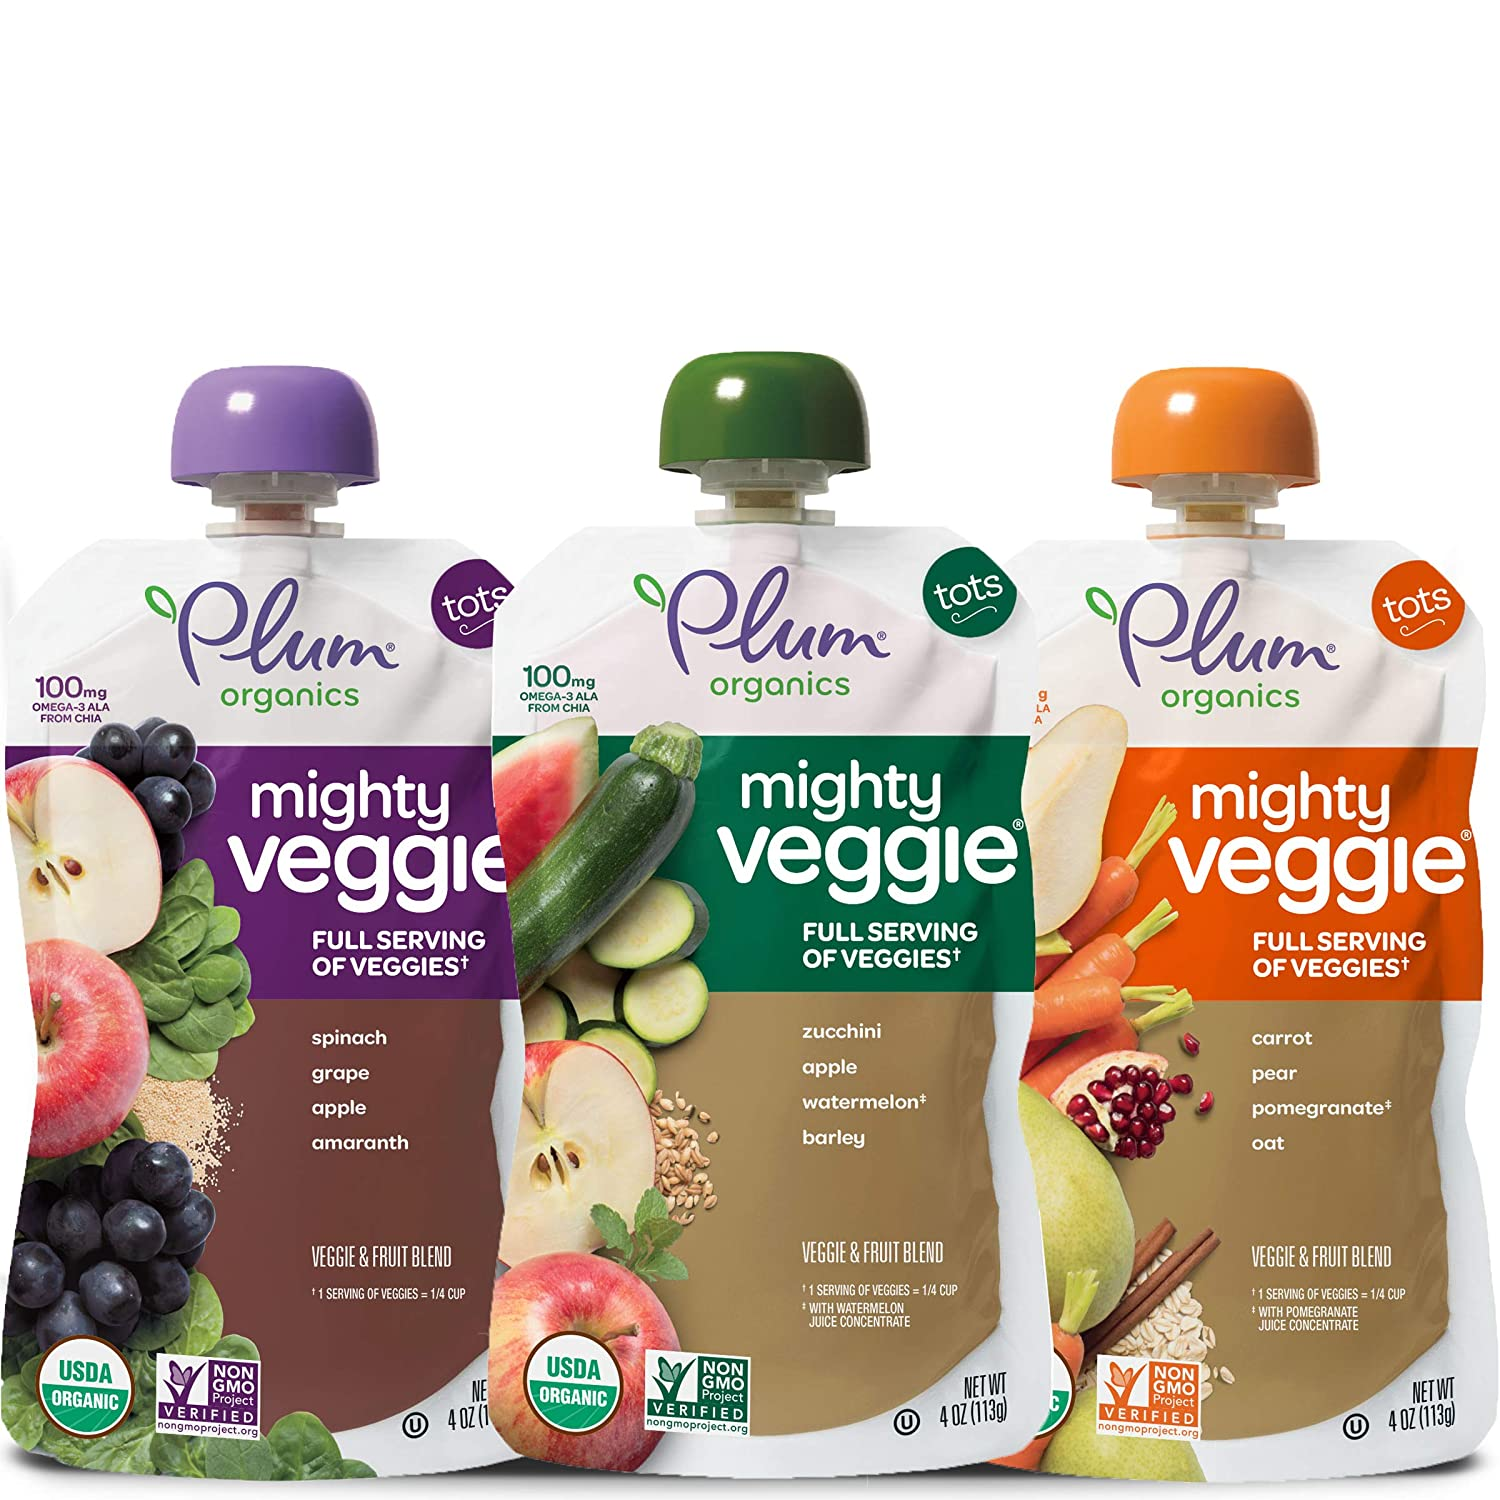 "Plum Organics Mighty Veggie, Organic Toddler Food, Variety Pack, 4 ounce pouch (Pack of 18)"" (Packaging May Vary)"